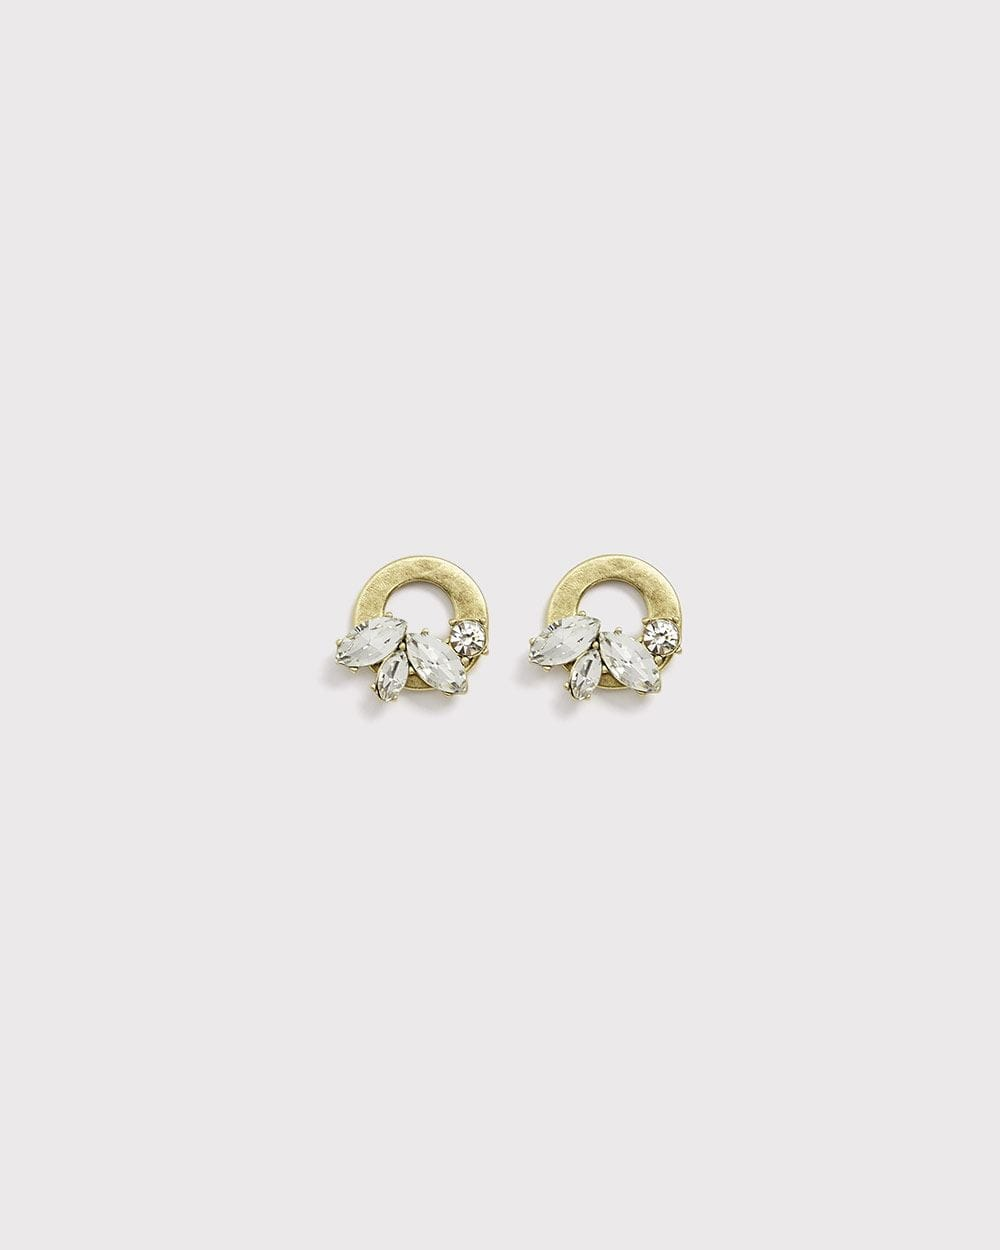 Crystal cluster circular stud earrings